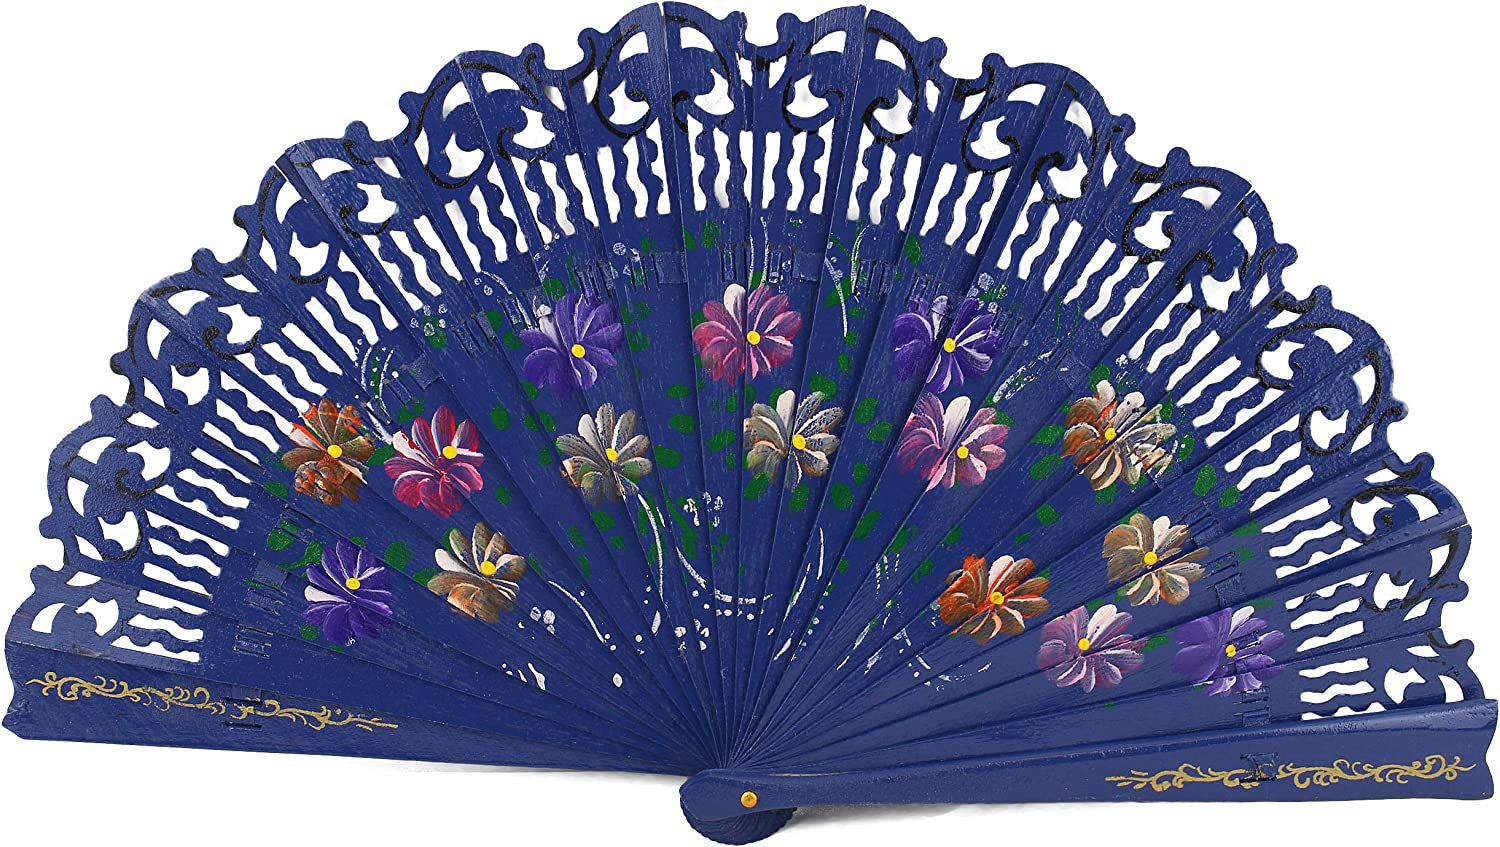 Asian Style Folding Fans Double Sided Wooden Spanish Floral Print Design Hand Fan Party Decoration Gift Idea Indoor Decor (Navy Blue)